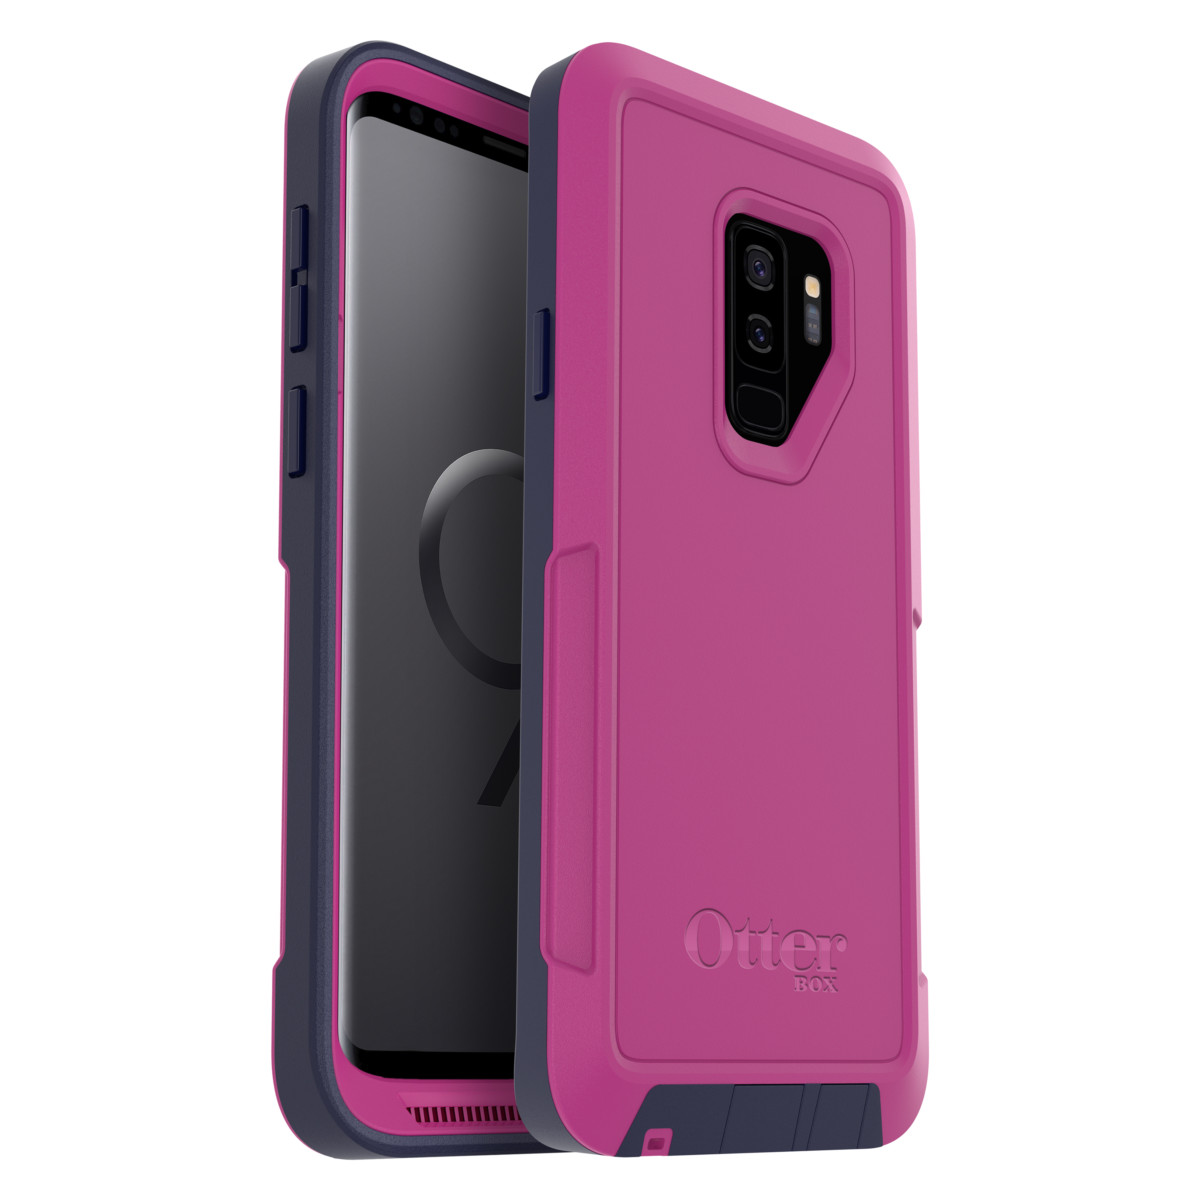 online store f84fd e49bf These Otterbox casings will protect your new Galaxy S9 and S9+ from ...